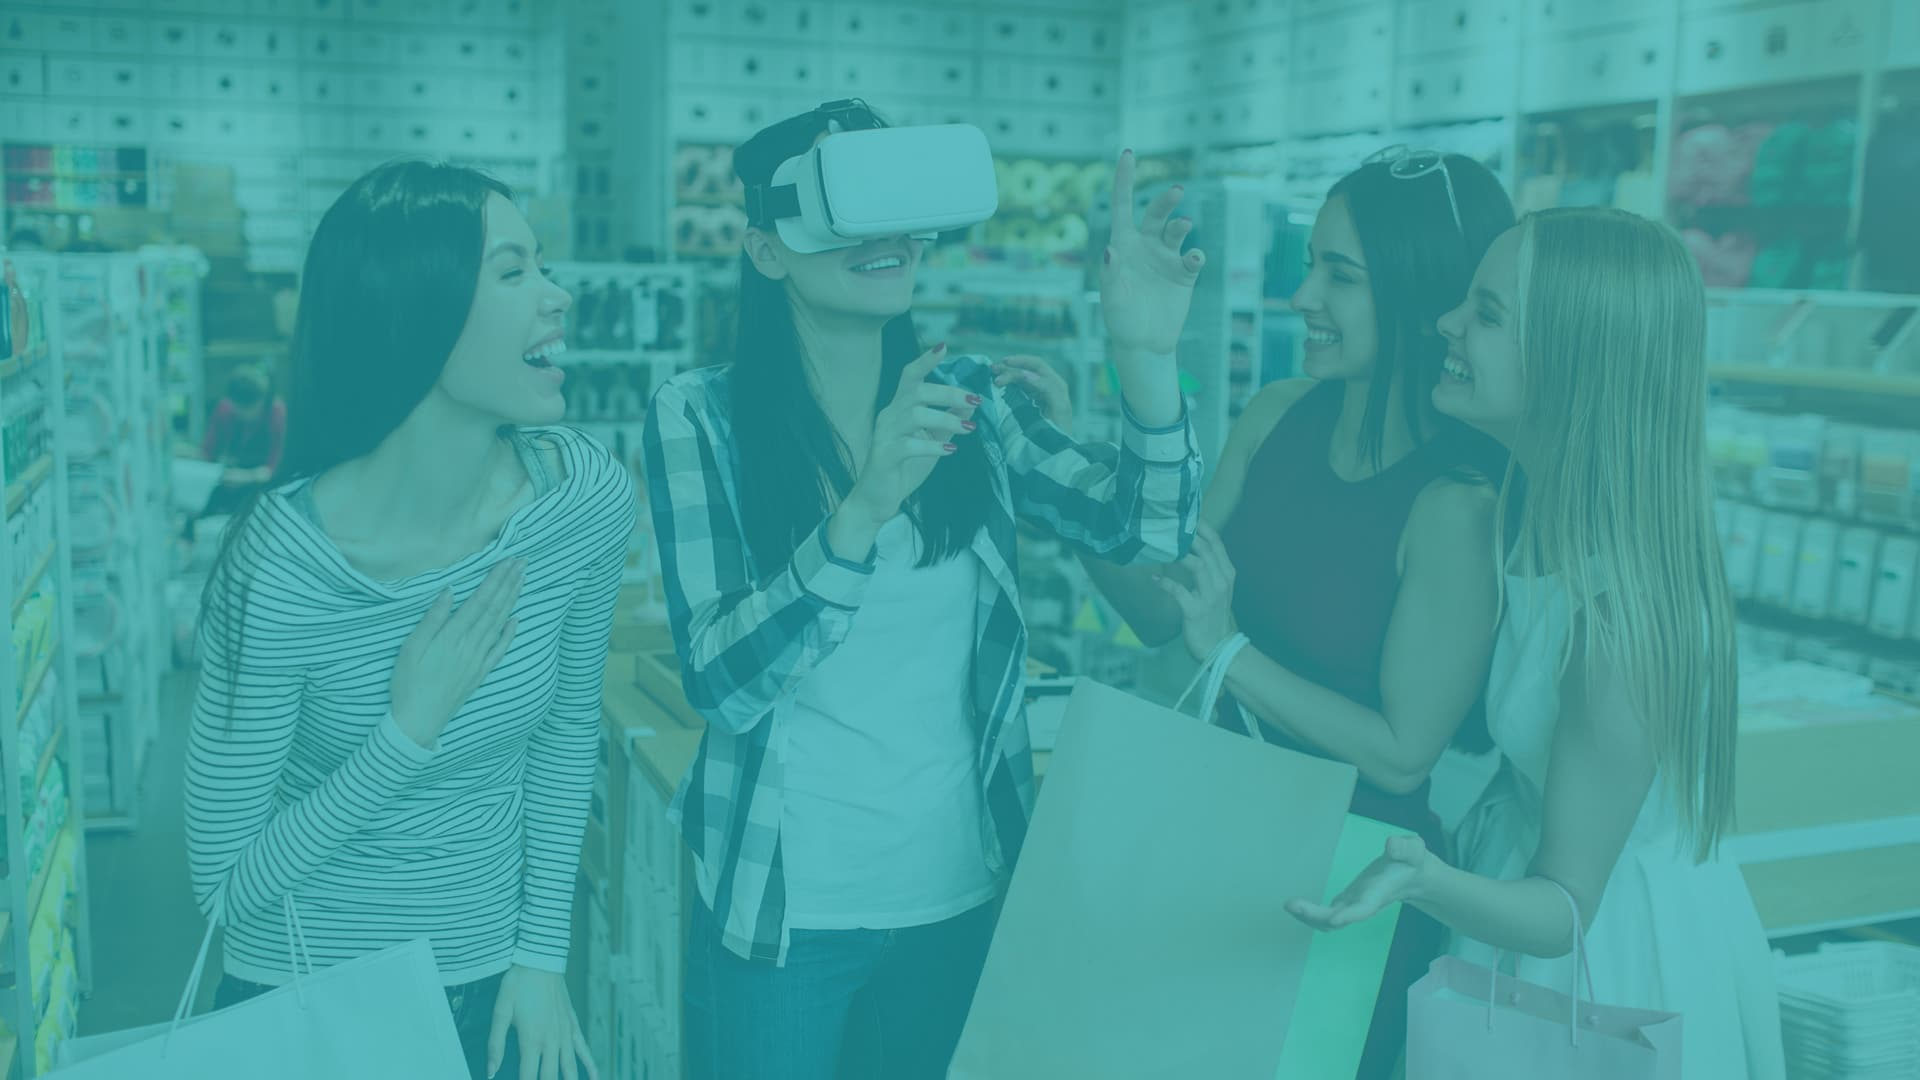 : girls shopping with vr headset